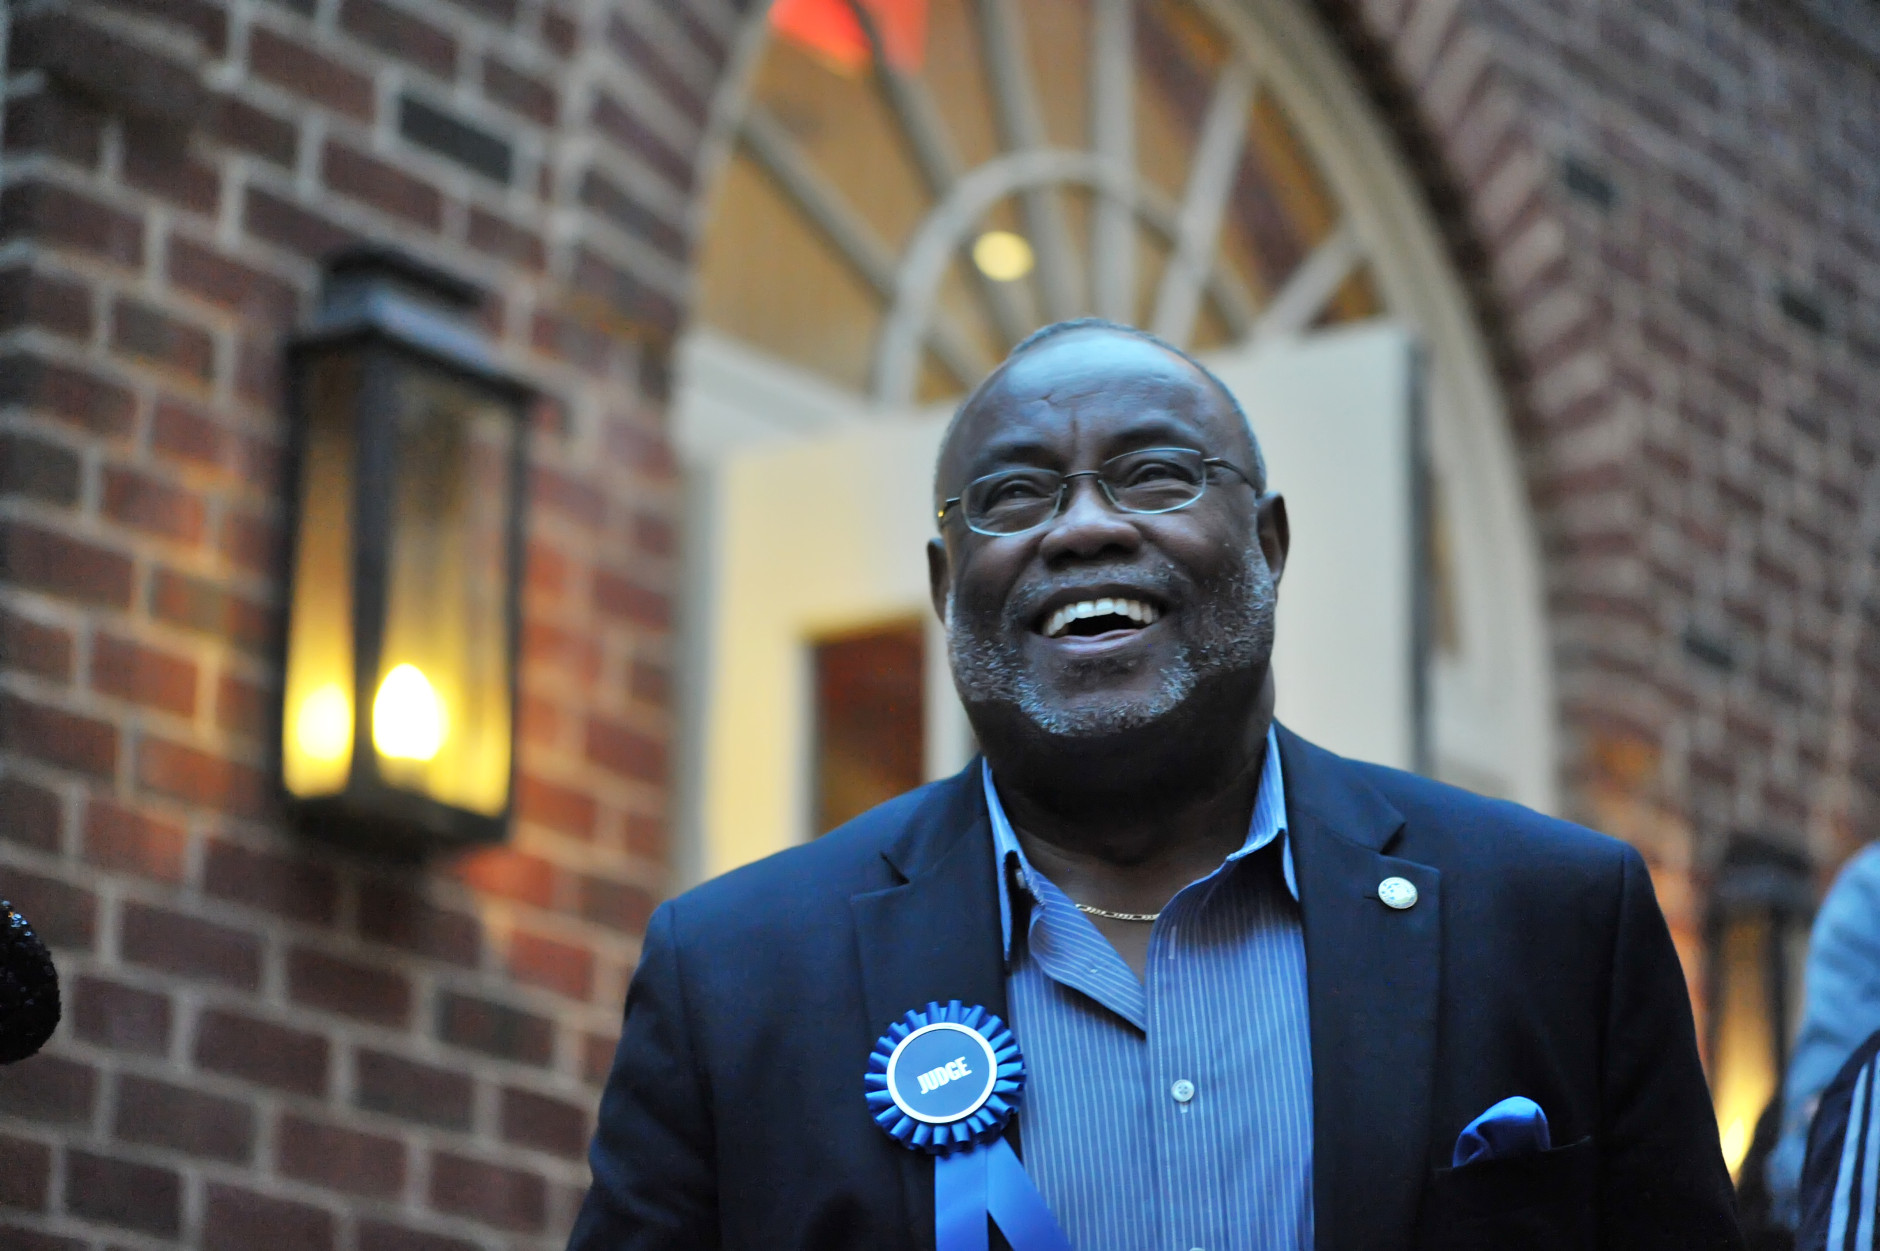 Mayor Bill Euille shares a smile while watching the canine competitors. (Shannon Finney Photography)